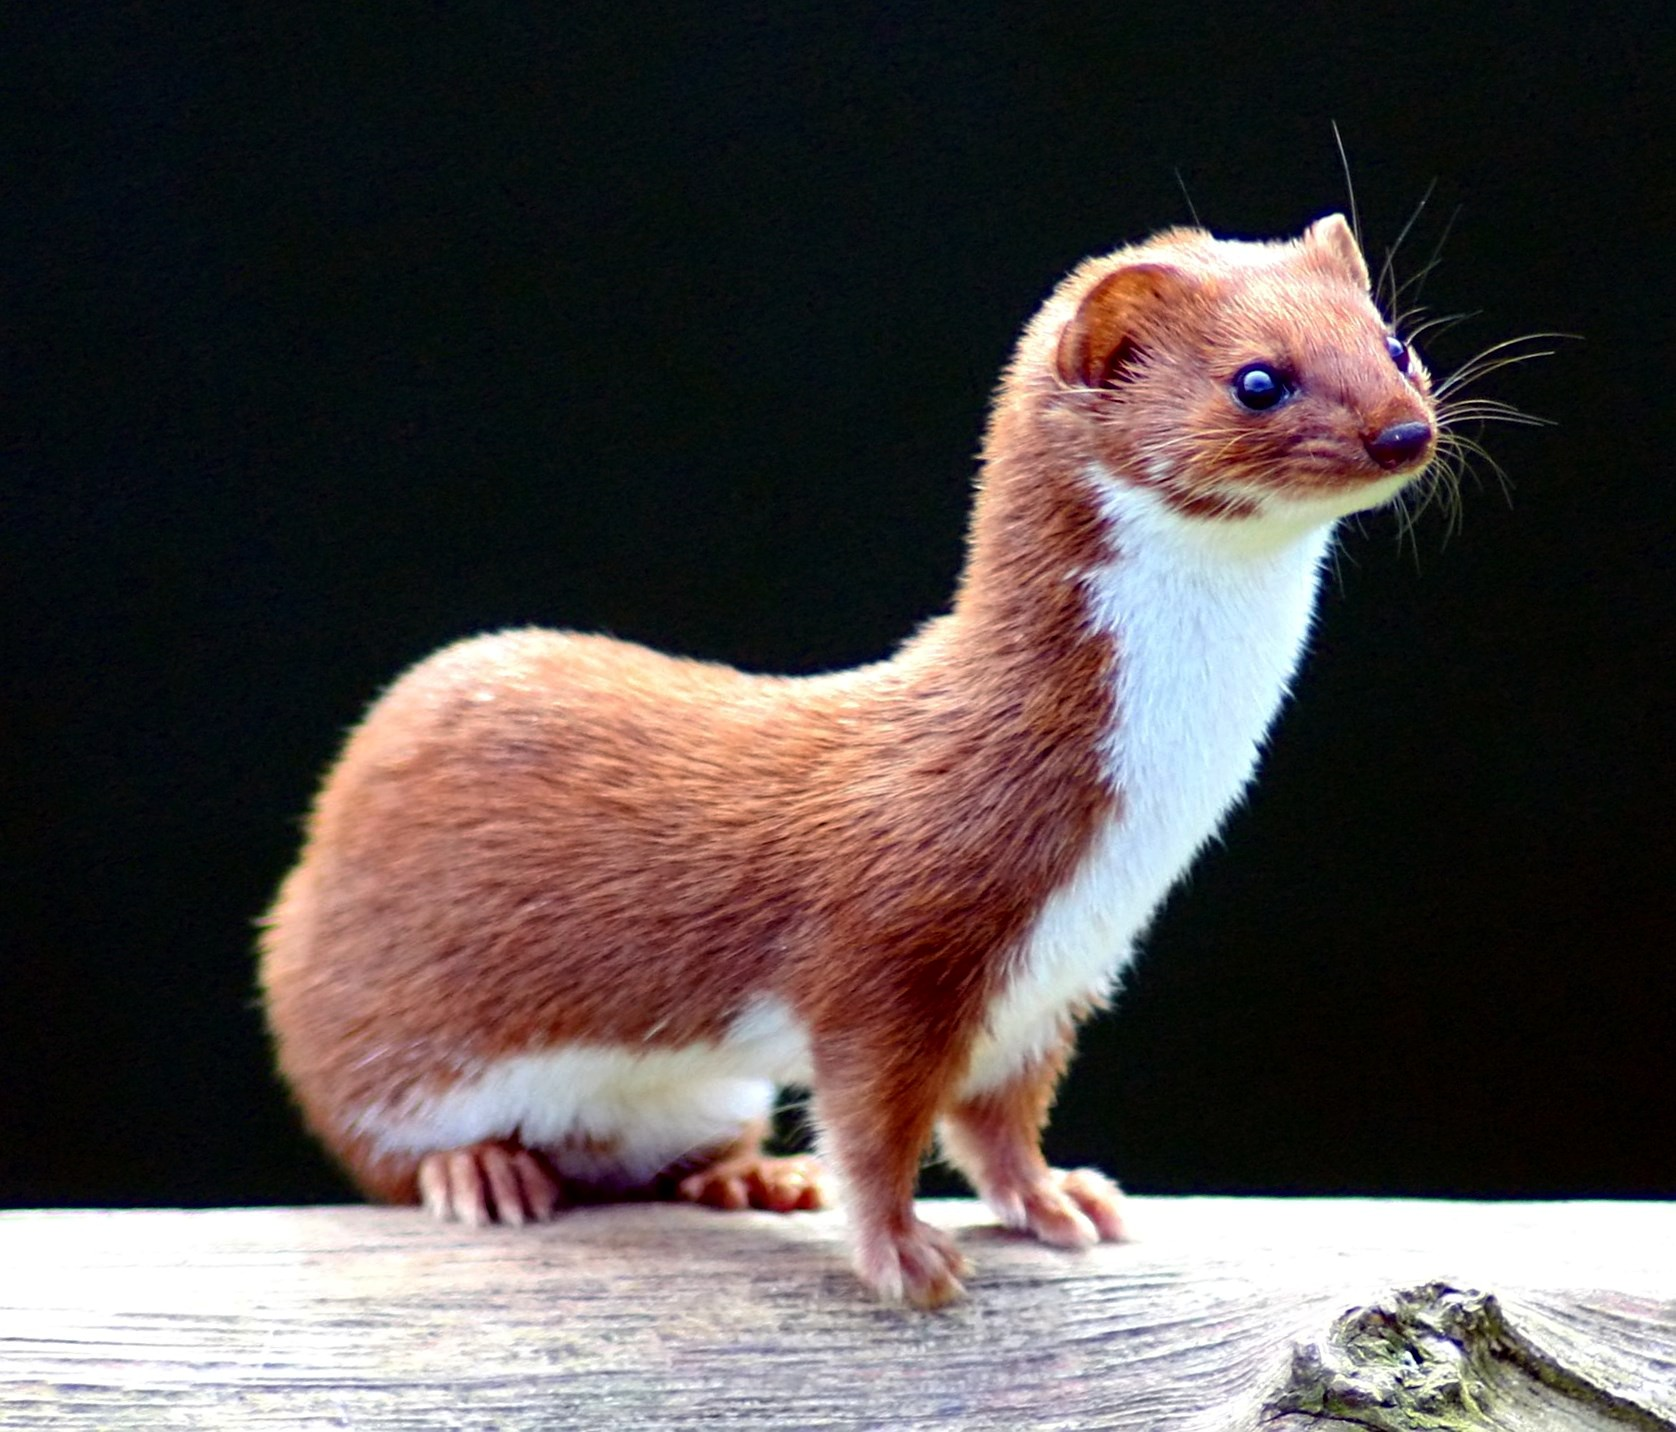 a particularly righteous weasel